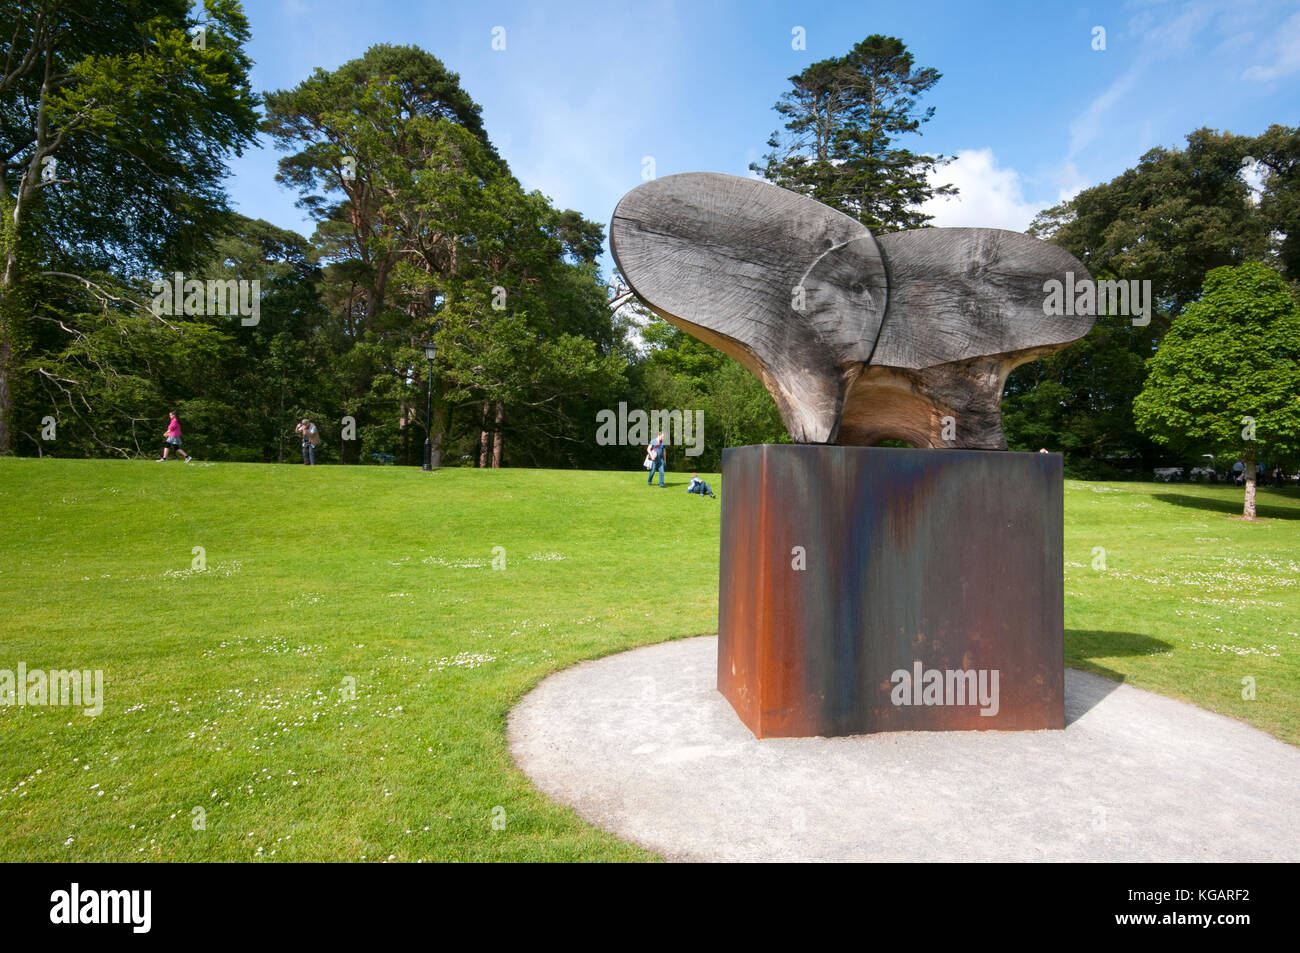 A.W.B. (Billy) Vincent Memorial by the german sculptor Rolf Hook, Muckross House and Gardens, Killarney National - Stock Image